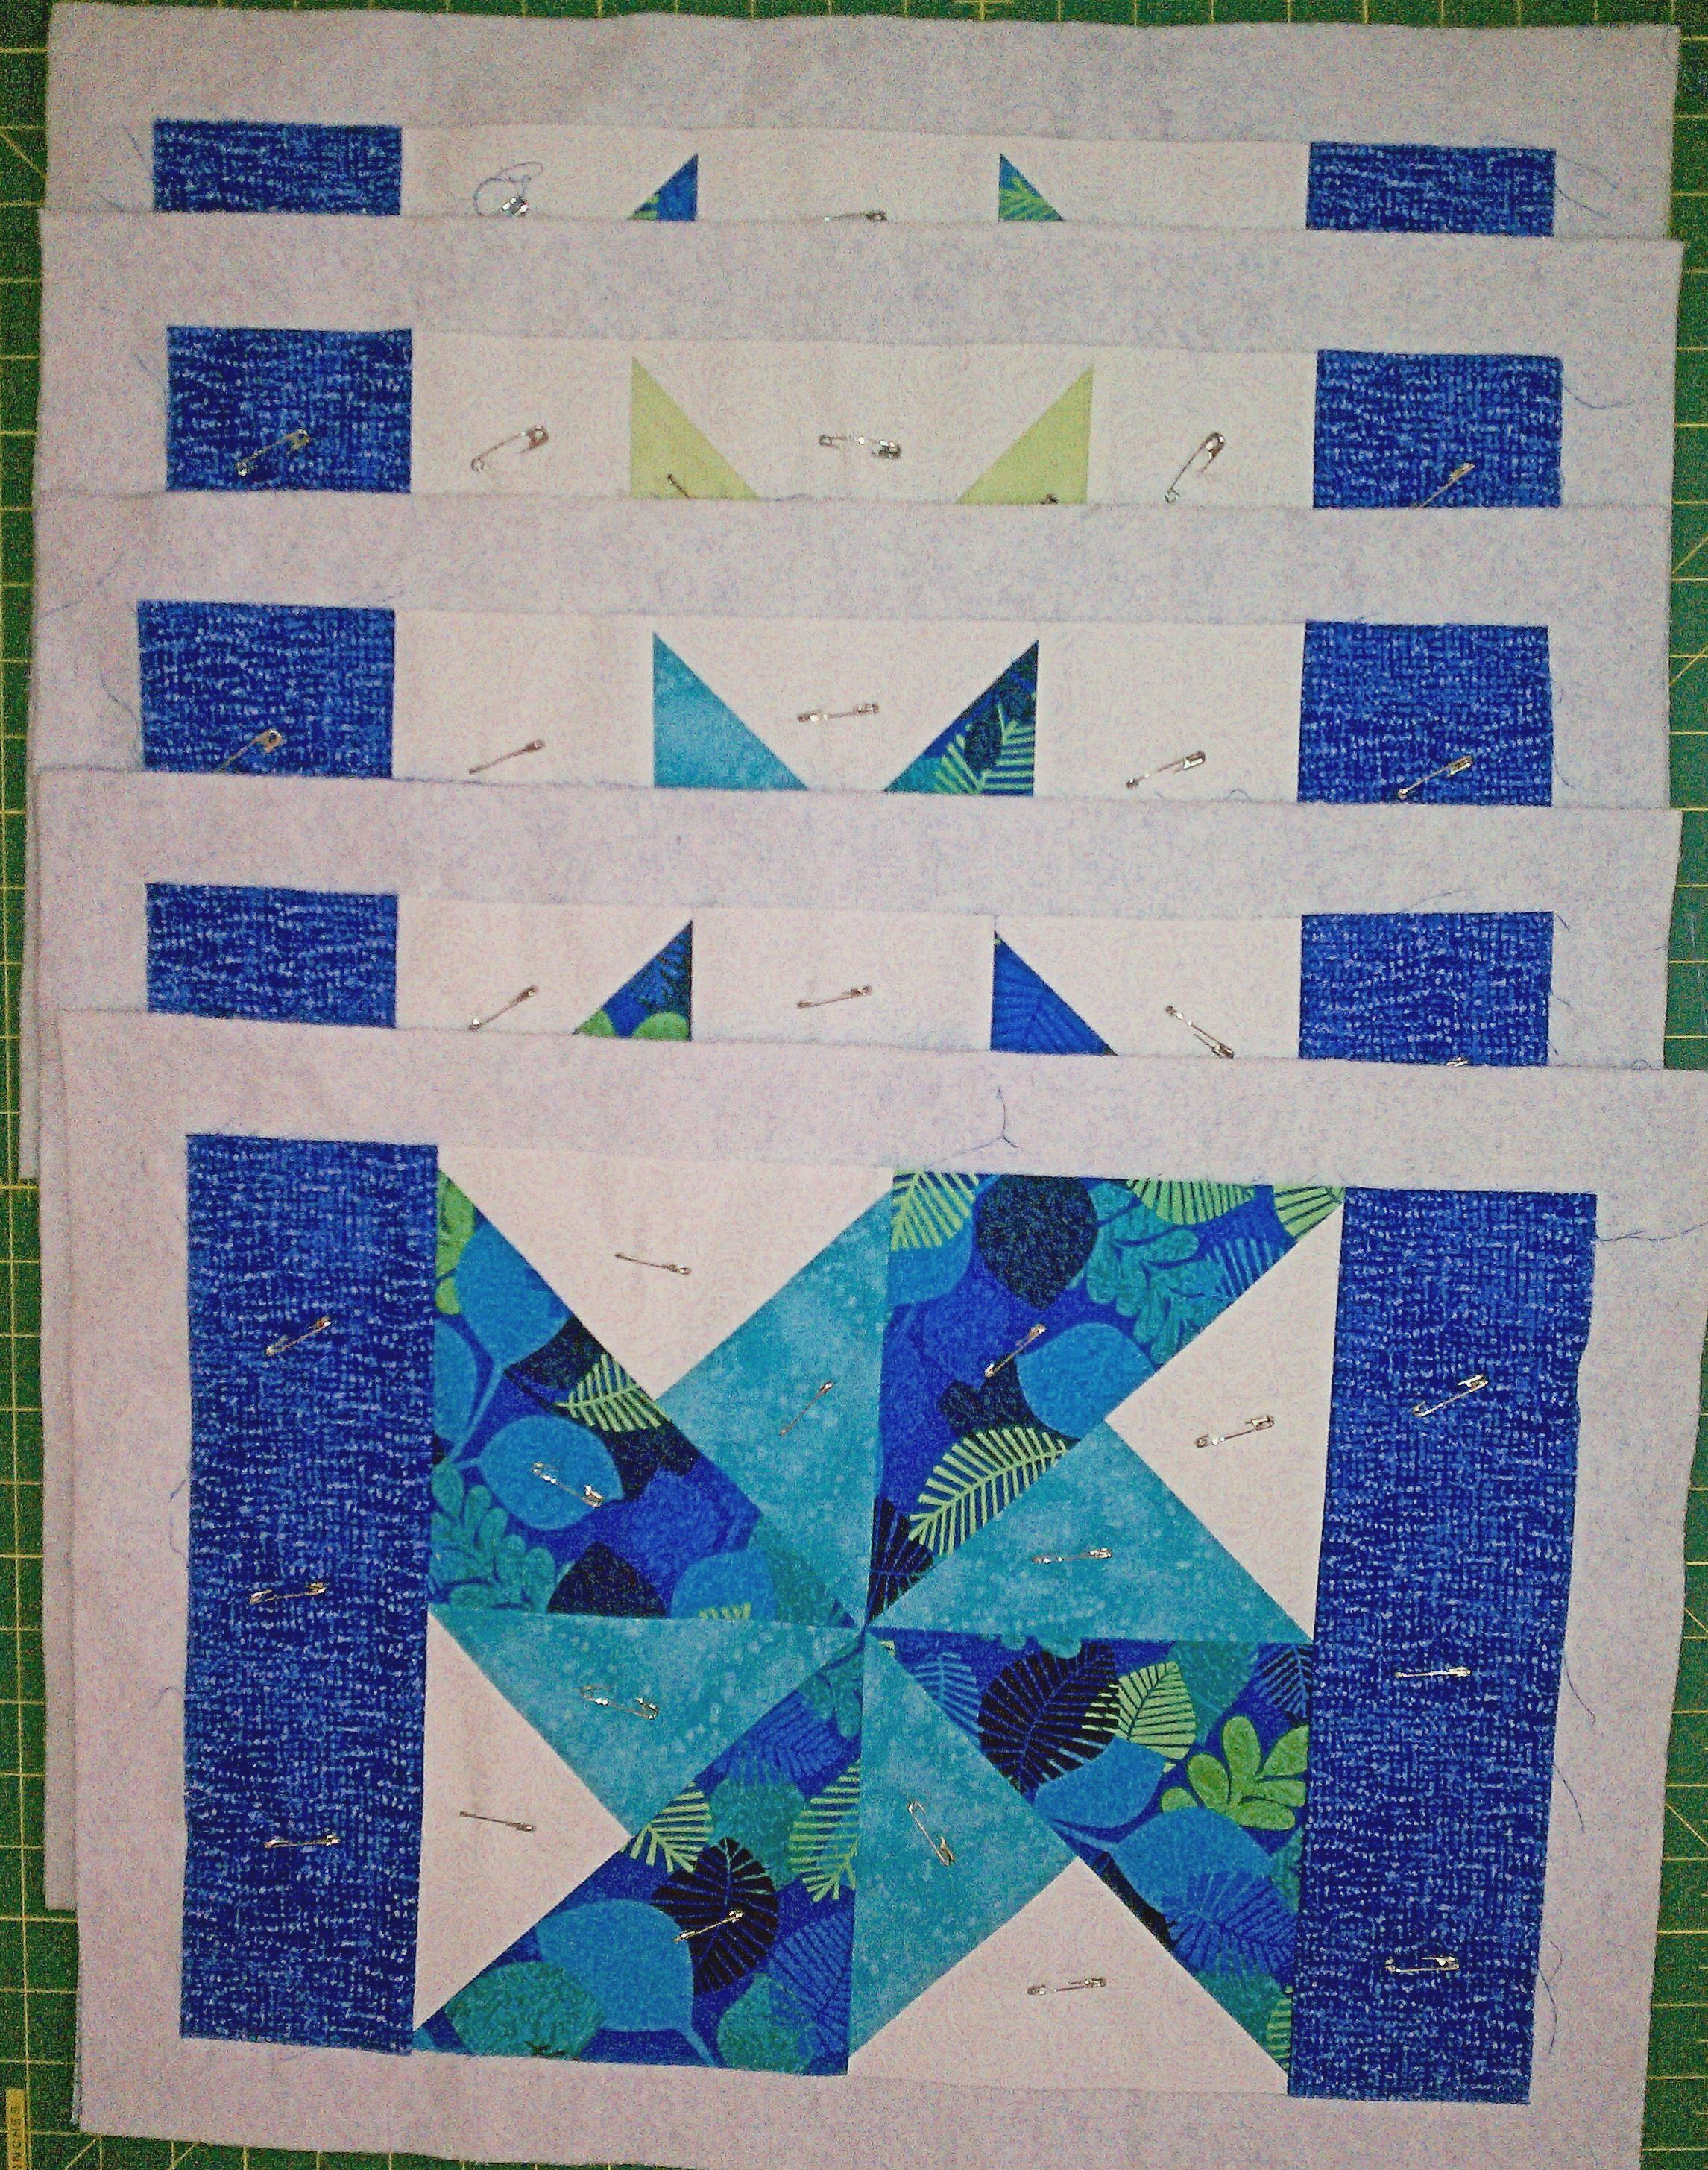 Quilt Patterns For Table Runners And Placemats : Placemats are ready to quilt in our last class. Quilting Pinterest Creative crafts and Craft